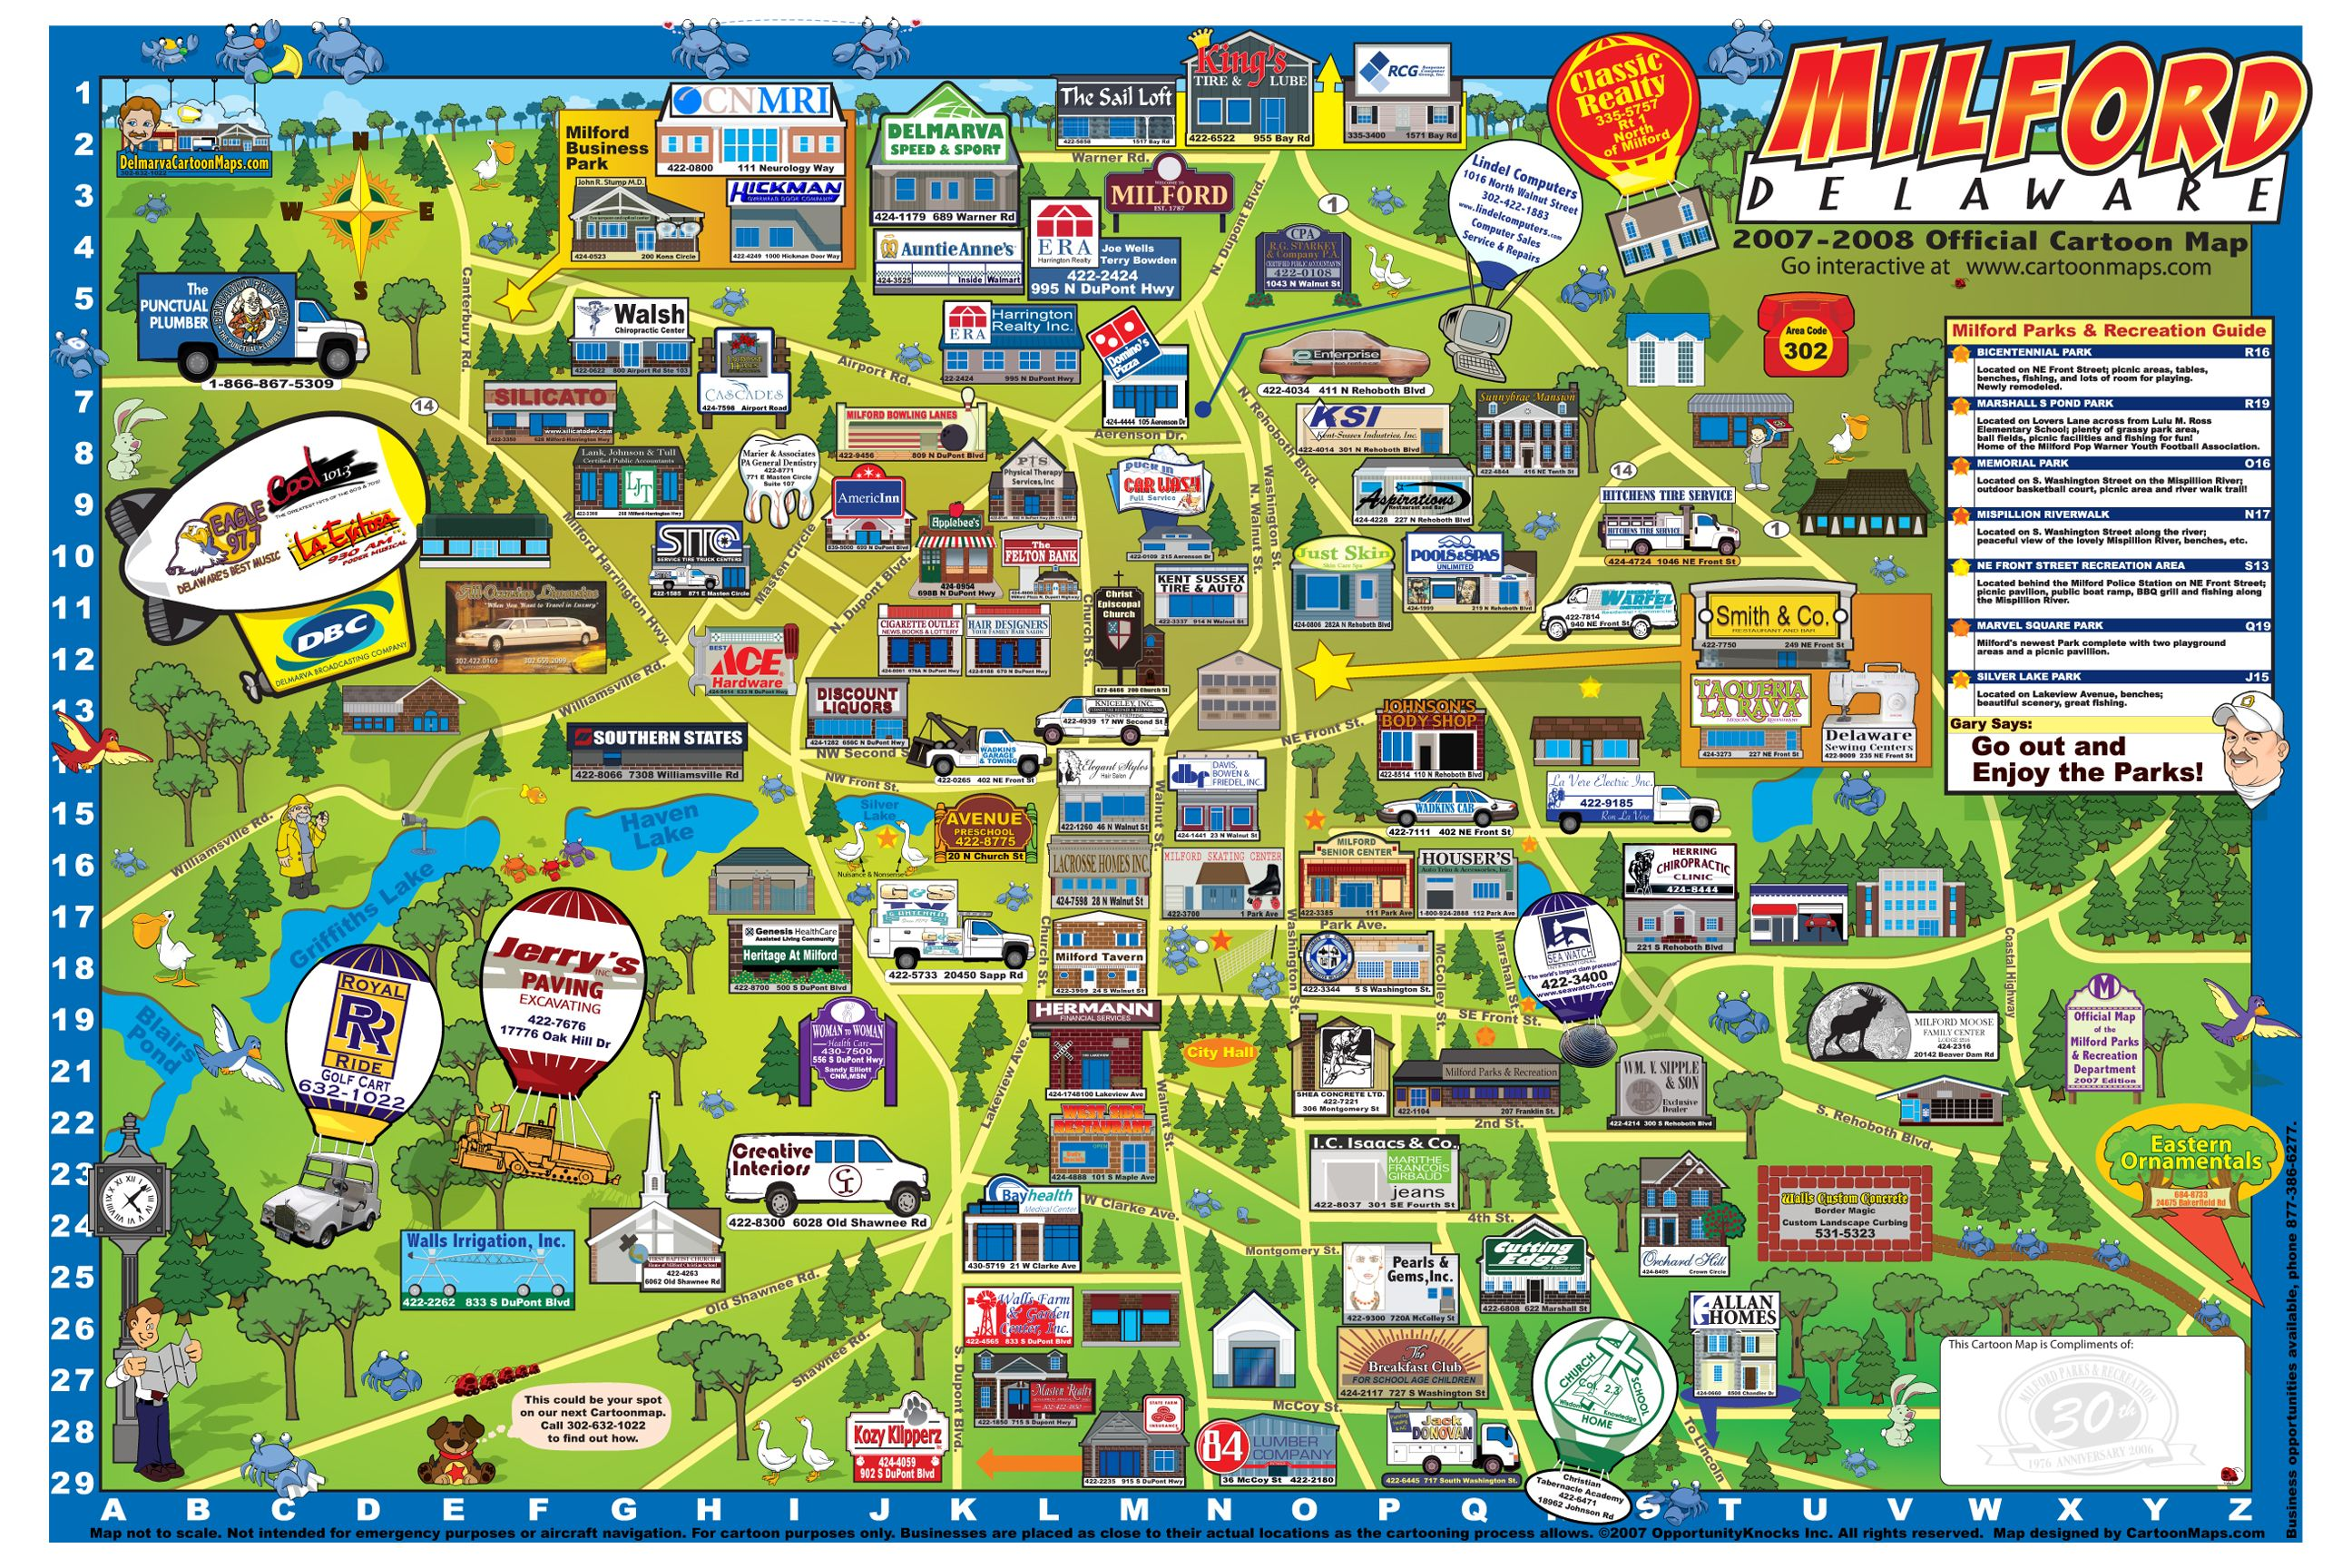 boston ma map with Milford Delaware Cartoon Map on Tilted Kilt Fenway Opens besides Citymap in addition 3091192628 as well Massachusetts Real Estate Atlases in addition 7633886288.